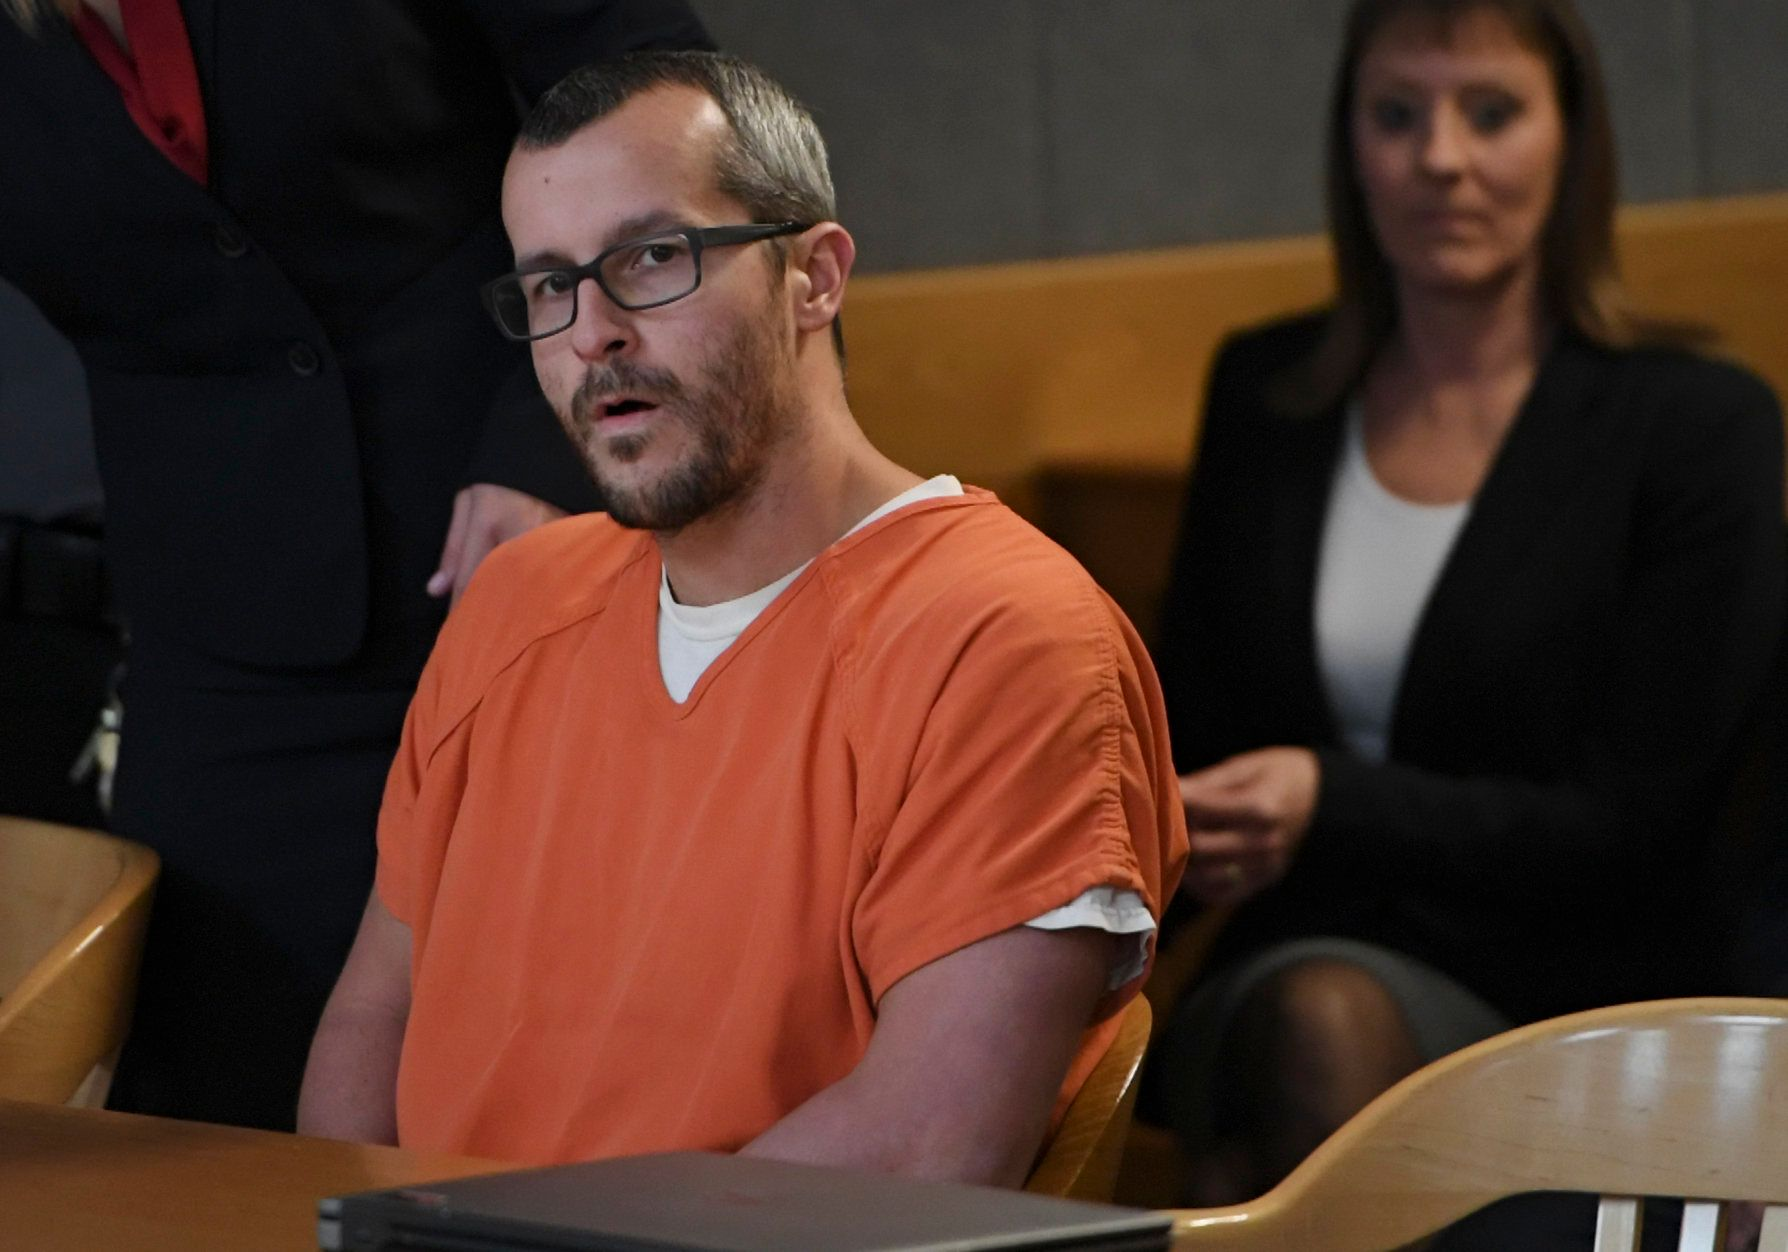 GREELEY CO - NOVEMBER 19: Christopher Watts sits in court for his sentencing hearing at the Weld County Courthouse on November 19, 2018 in Greeley, Colorado. Watts was sentenced to life in prison for murdering his pregnant wife, daughters. (Photo by RJ Sangosti/The Denver Post via Getty Images)